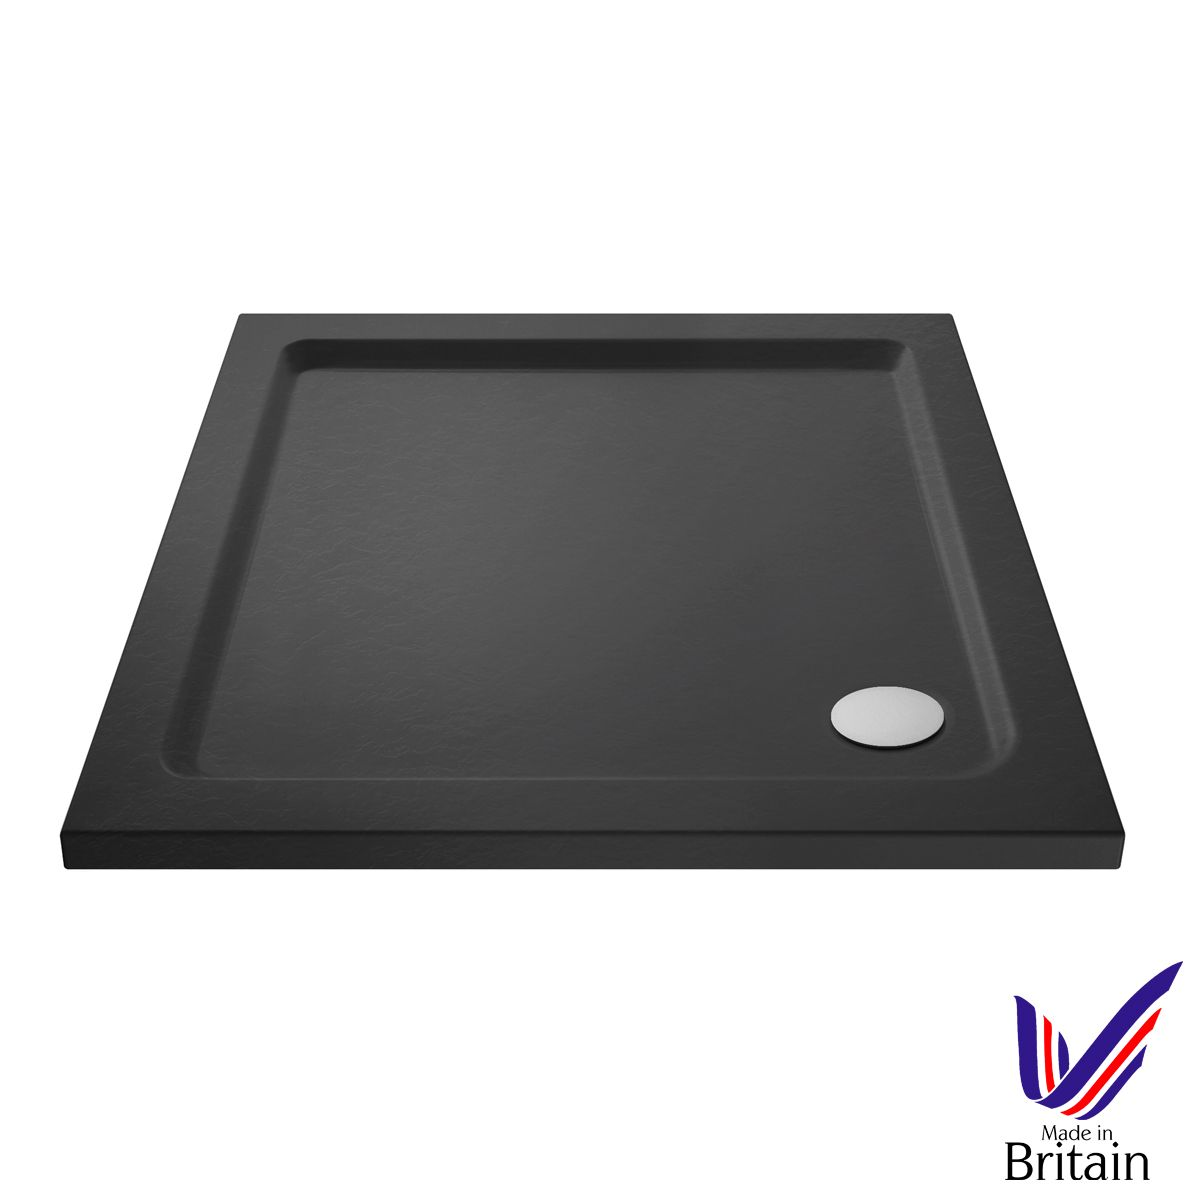 760 x 760 Shower Tray Slate Grey Square Low Profile by Pearlstone